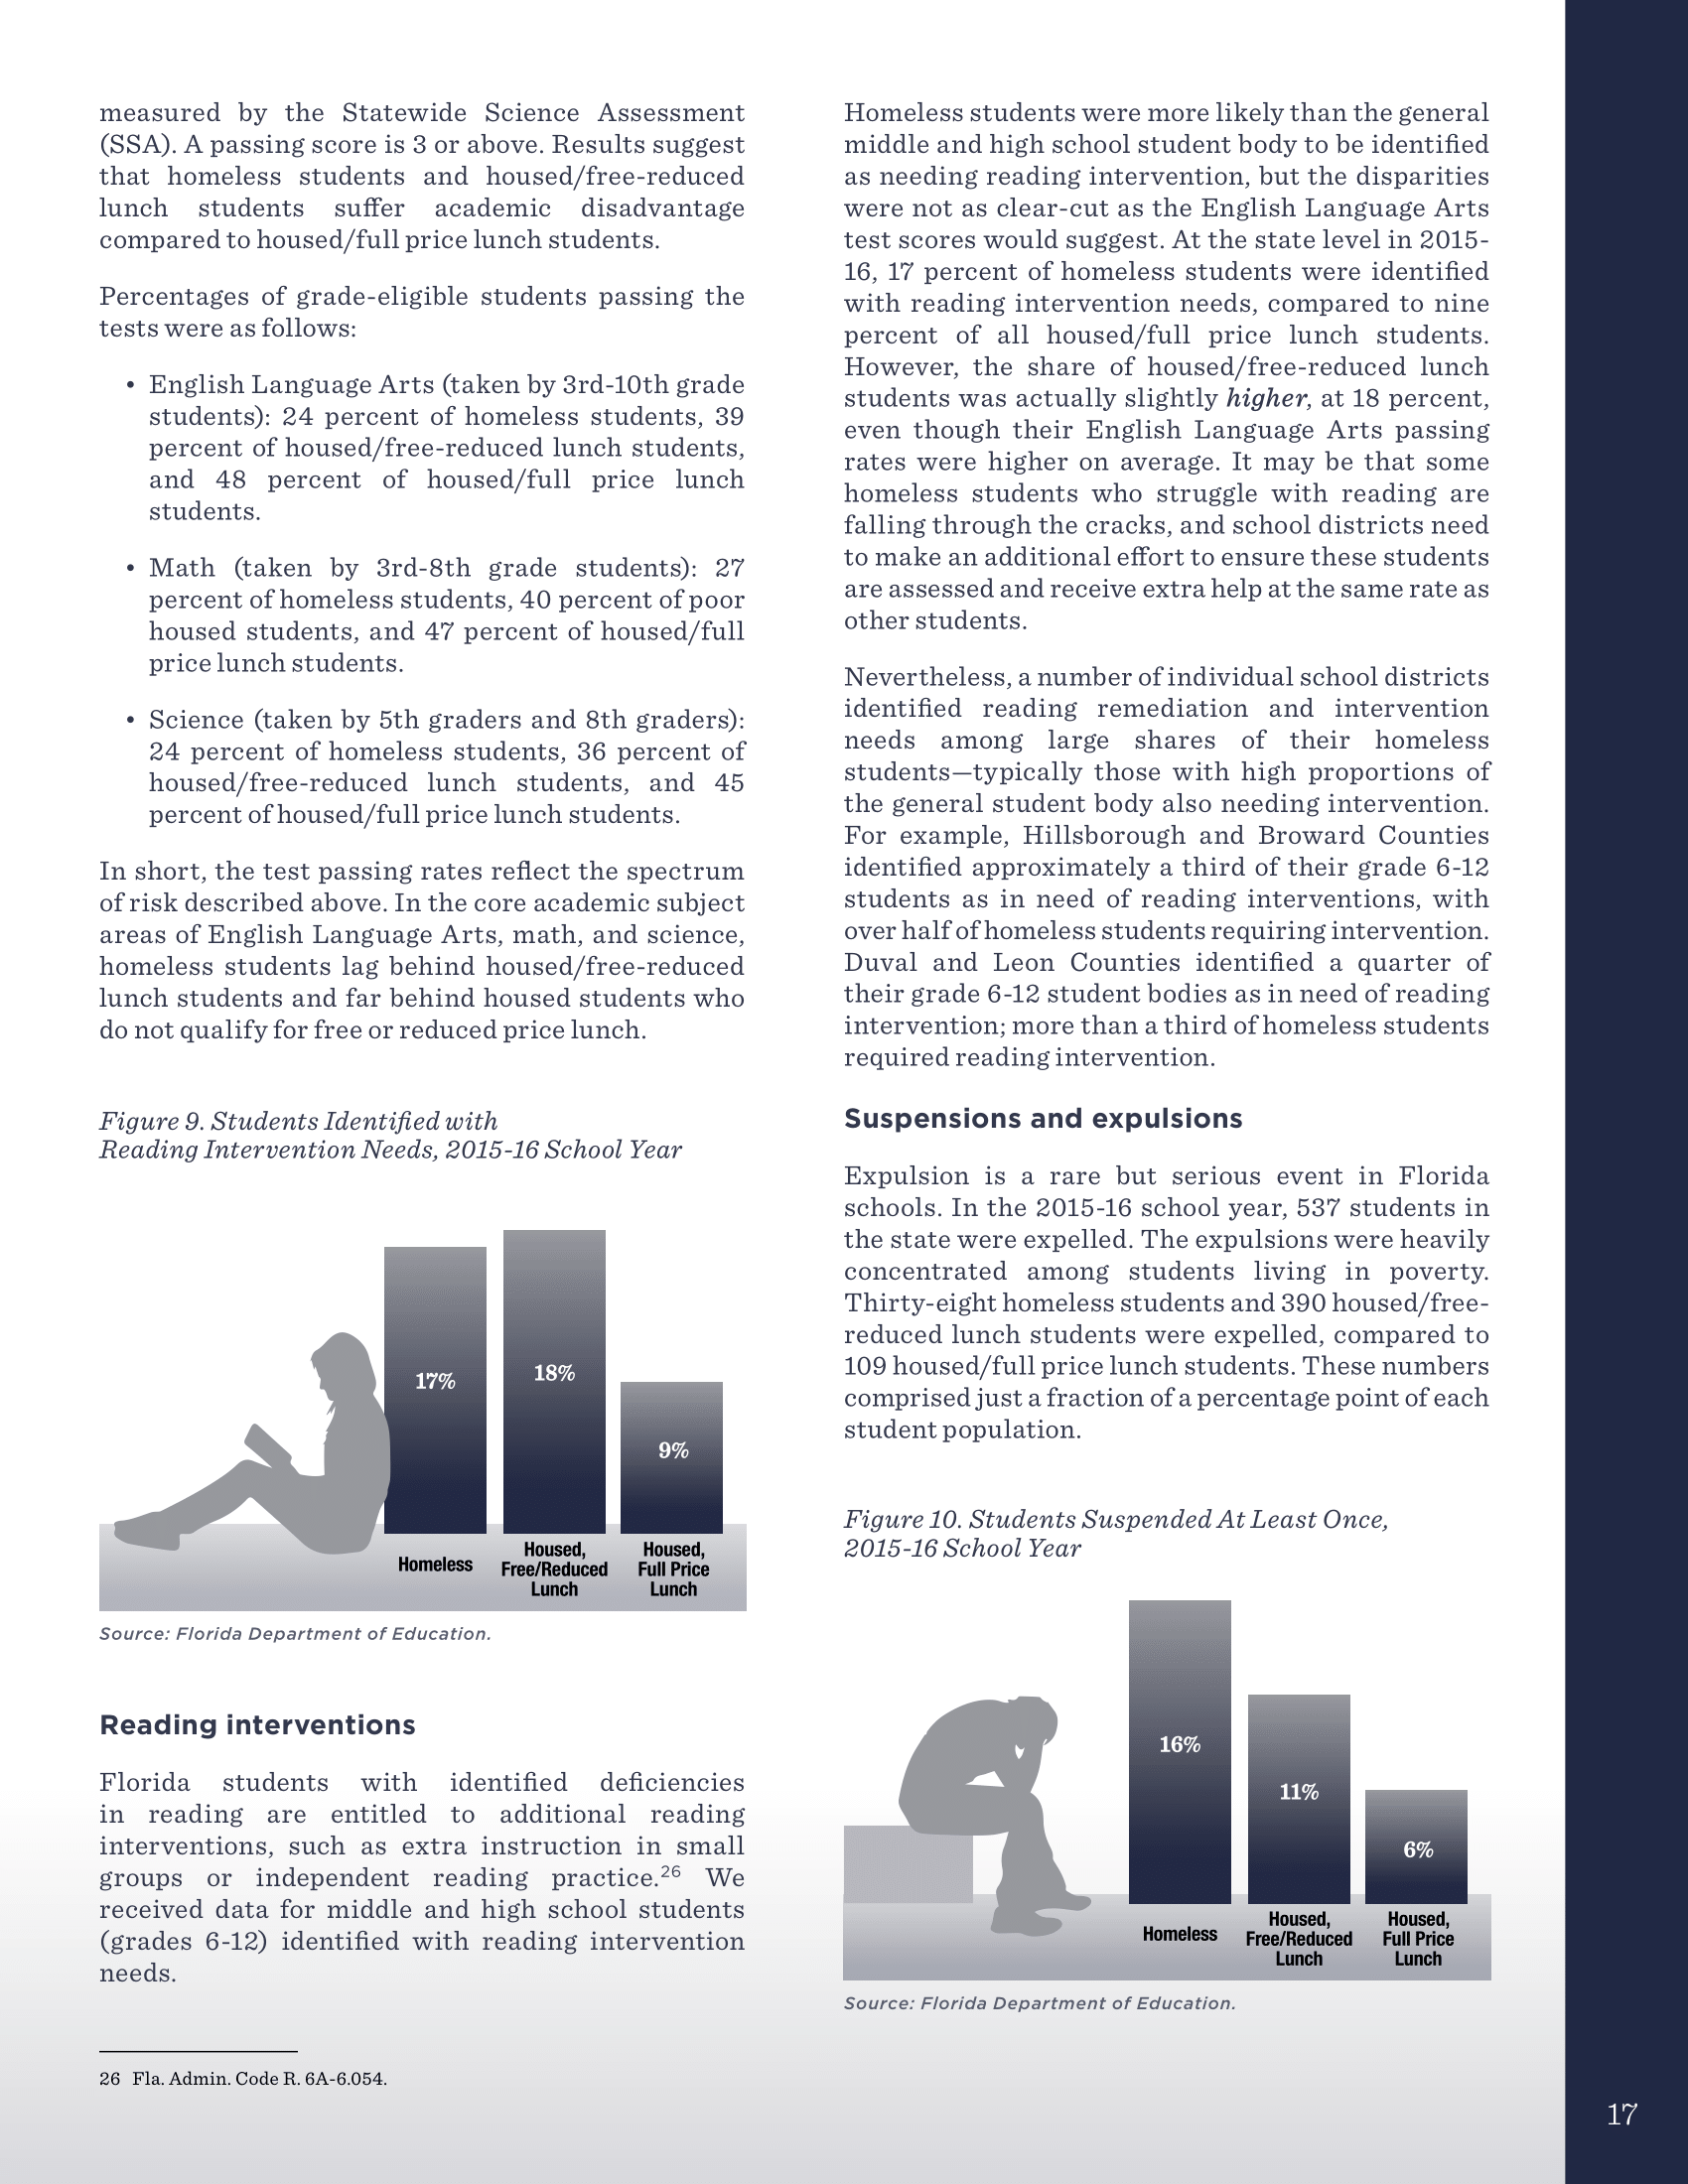 Homelessness and Education in Florida Impacts on Children and Youth - October 2017-17.png